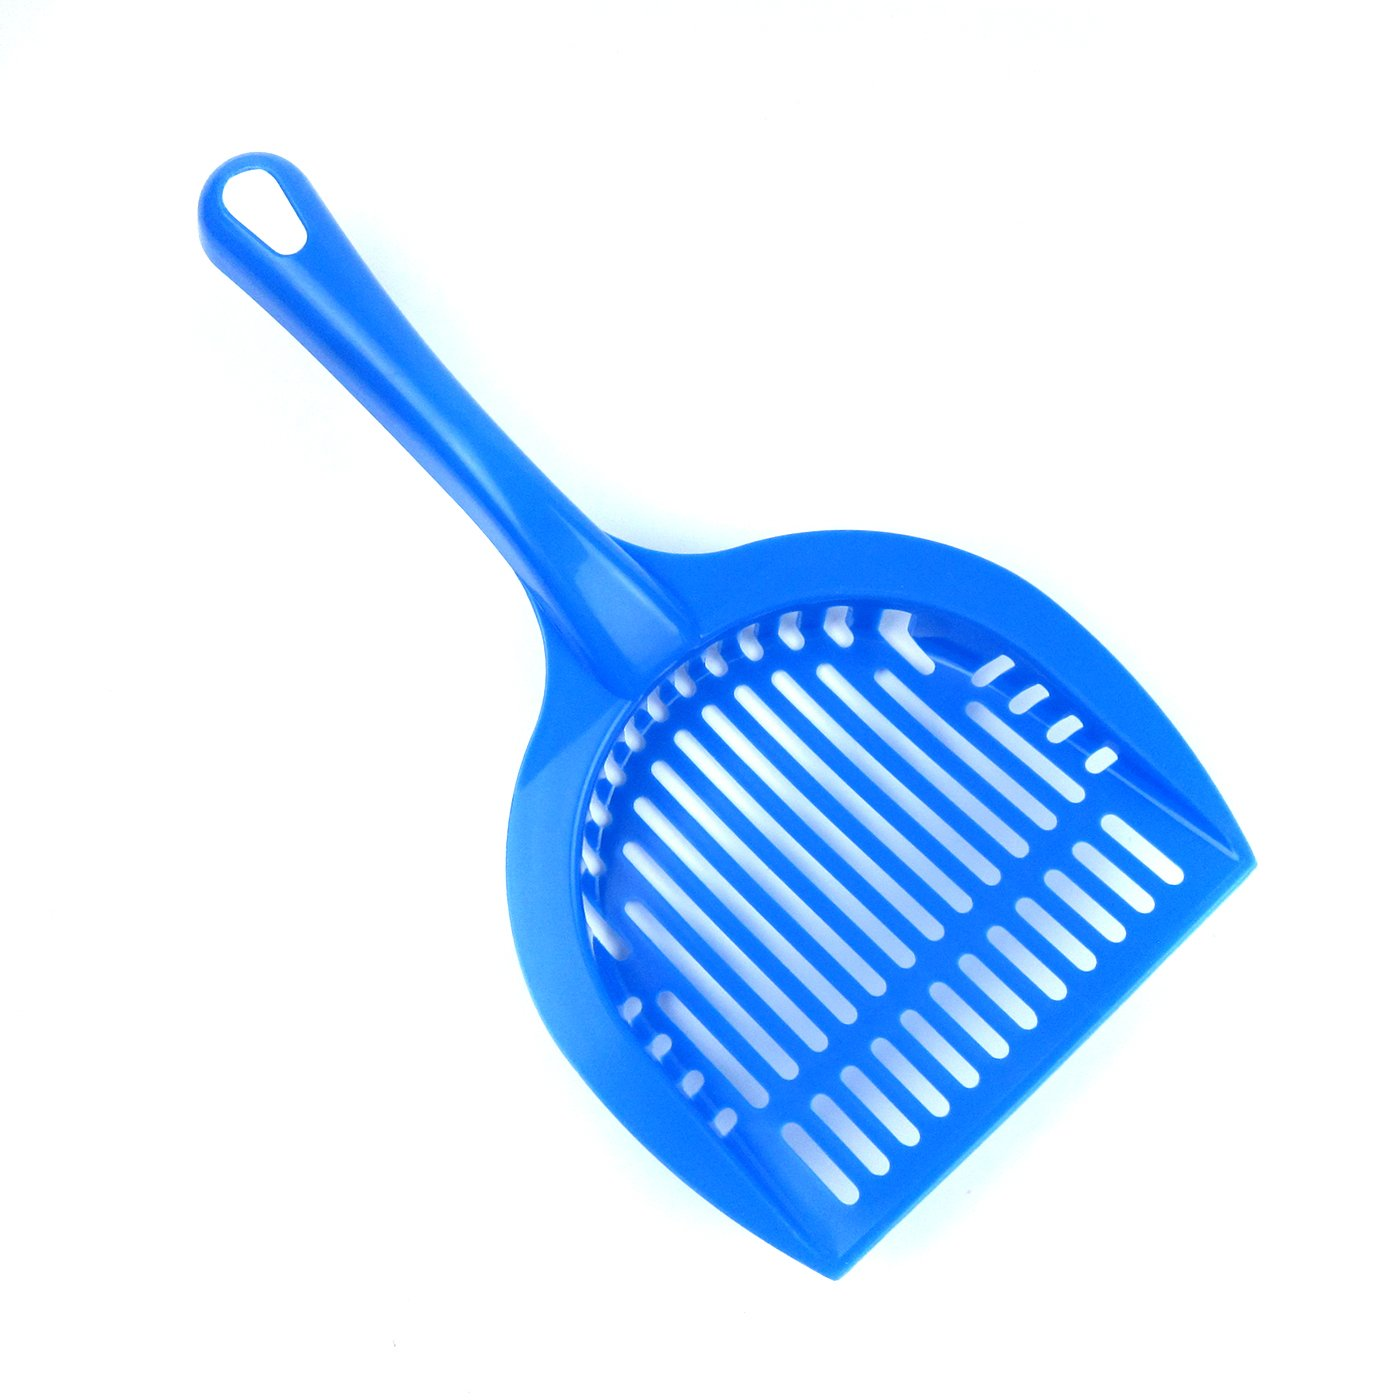 Alfie Pet by Petoga Couture - Aaron Cat or Small Animal Cleaning Brush Set - Color Blue by Alfie (Image #6)